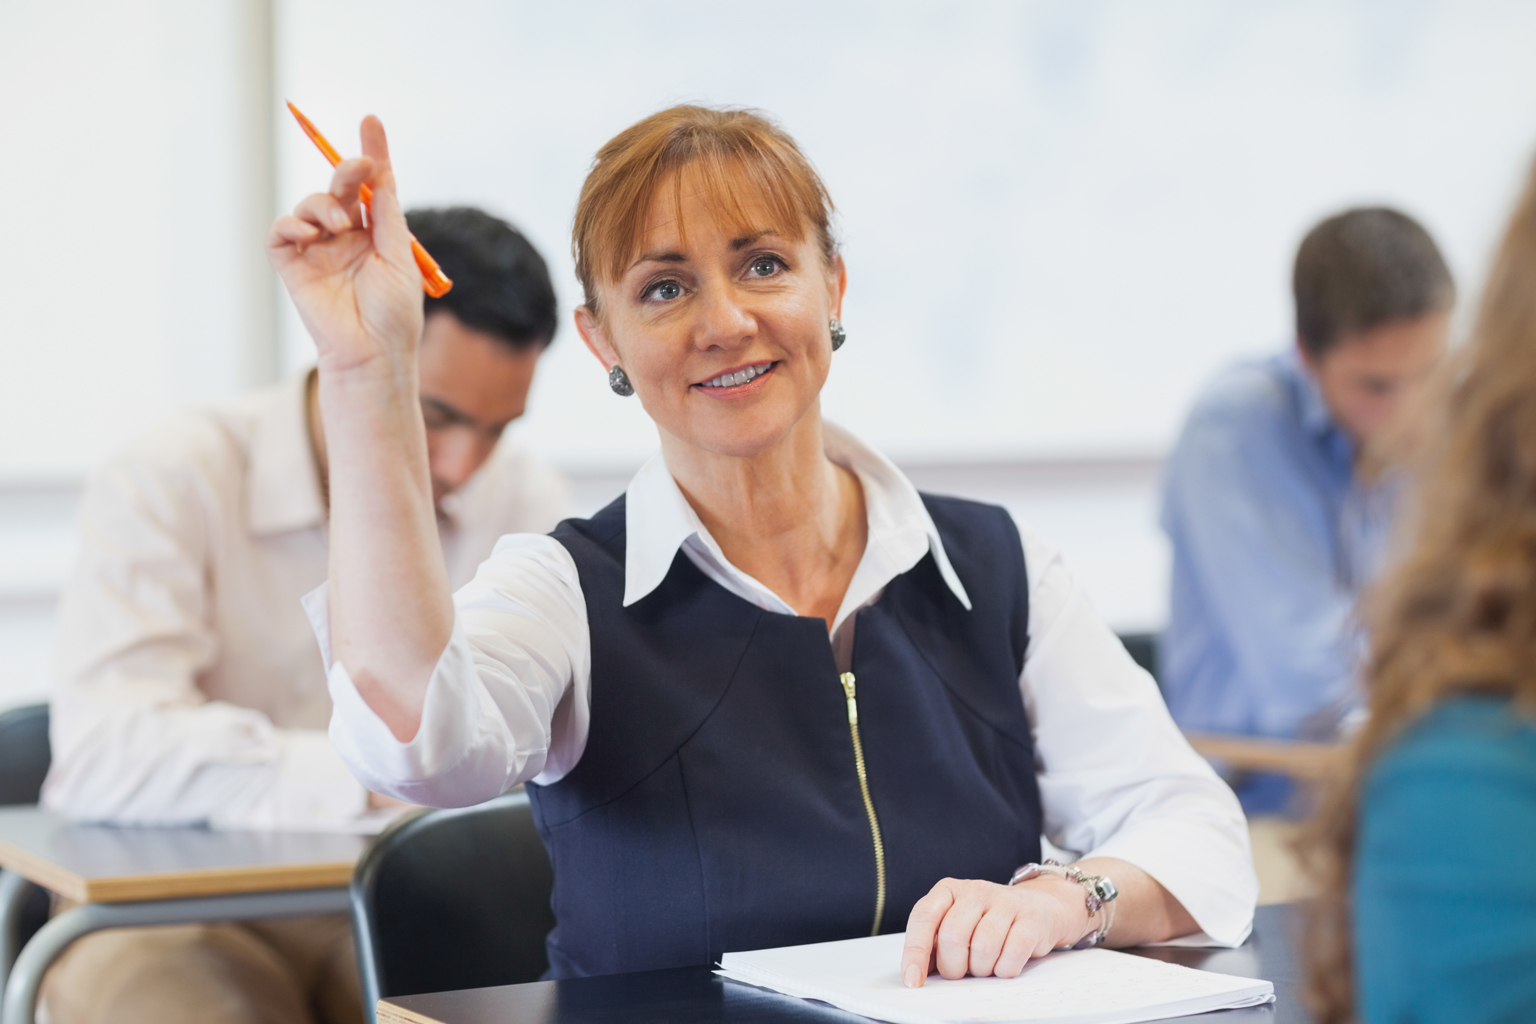 Middle-aged woman sitting in class with hand raised